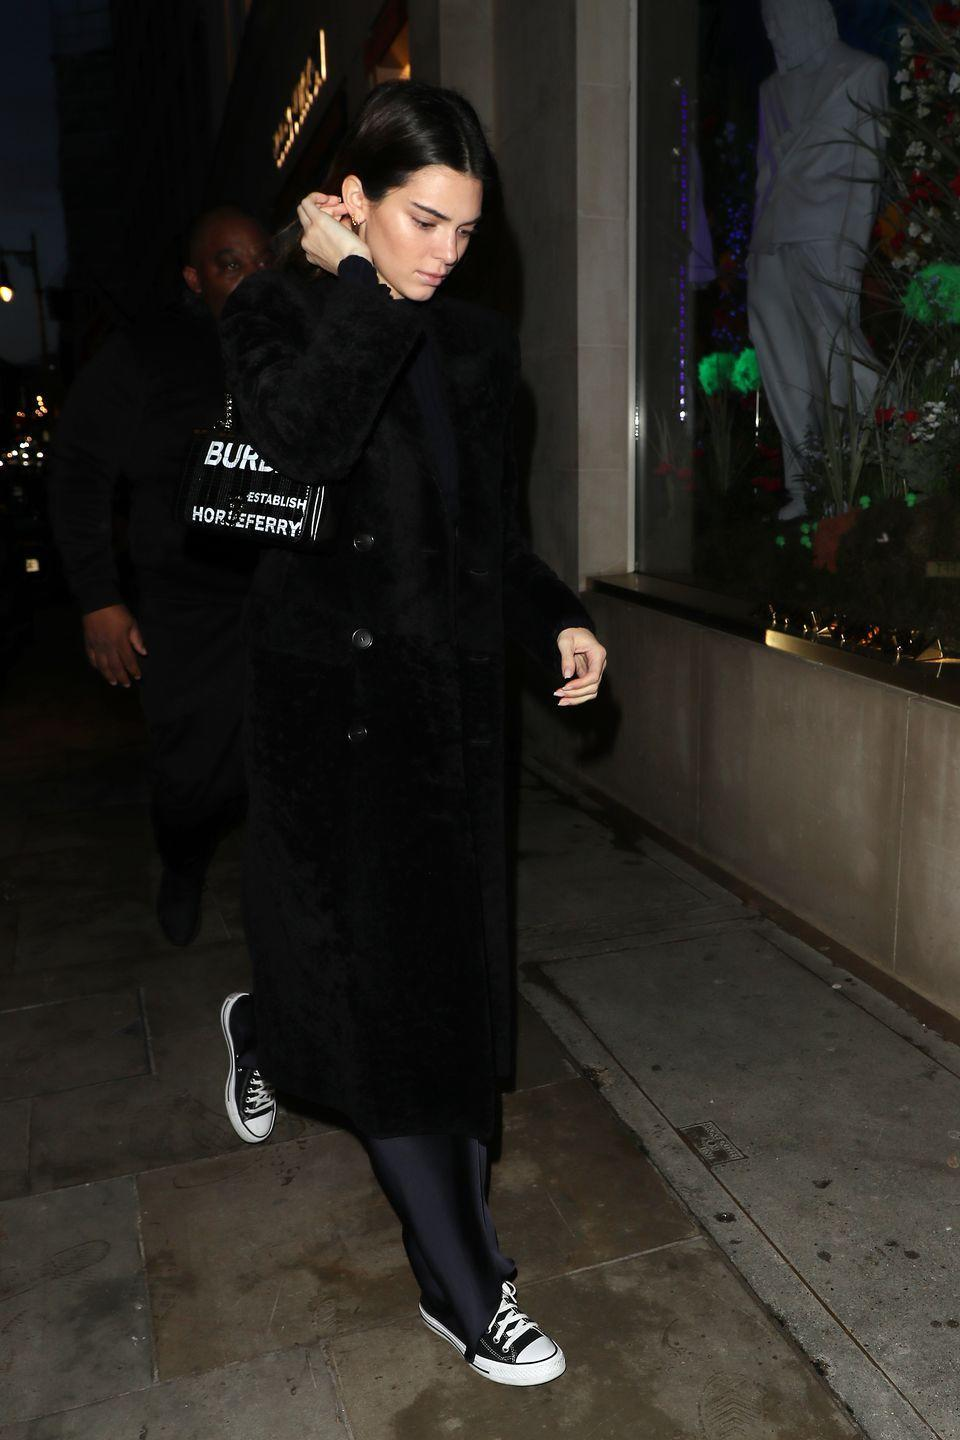 """<p>The model was seen shopping at Louis Vuitton before heading to the Burberry head office for a fitting during London Fashion Week. The star wore an all-black, Matrix look which consisted of black Converse trainers, black satin trousers, a black overcoat, black jumper and carried a black Burberry bag for the outing. </p><p><a class=""""link rapid-noclick-resp"""" href=""""https://go.redirectingat.com?id=127X1599956&url=https%3A%2F%2Fwww.net-a-porter.com%2Fgb%2Fen%2Fproduct%2F1148911%3Fgclsrc%3Daw.ds%26gclsrc%3Daw.ds%26cm_mmc%3DGoogle-ProductSearch-UK--c-_-NAP_EN_UK_PLA-_-NAP%2B-%2BUK%2B-%2BGS%2B-%2BSale%2B-%2B1MD%2B-%2BDesigner%2B-%2BFW19%2B-%2BCSS--Sale%2B-%2BClothing_INTL%26gclid%3DCj0KCQiAkKnyBRDwARIsALtxe7hDXaL3eZfLLyvZ_uIIjz8iBgOn3jtd79vc41188SFwuhBw37IHbHEaAhpxEALw_wcB&sref=https%3A%2F%2Fwww.elle.com%2Fuk%2Ffashion%2Fcelebrity-style%2Farticles%2Fg2543%2Fkendall-jenner%2F"""" rel=""""nofollow noopener"""" target=""""_blank"""" data-ylk=""""slk:SHOP SILK-SATIN TROUSERS"""">SHOP SILK-SATIN TROUSERS</a></p>"""